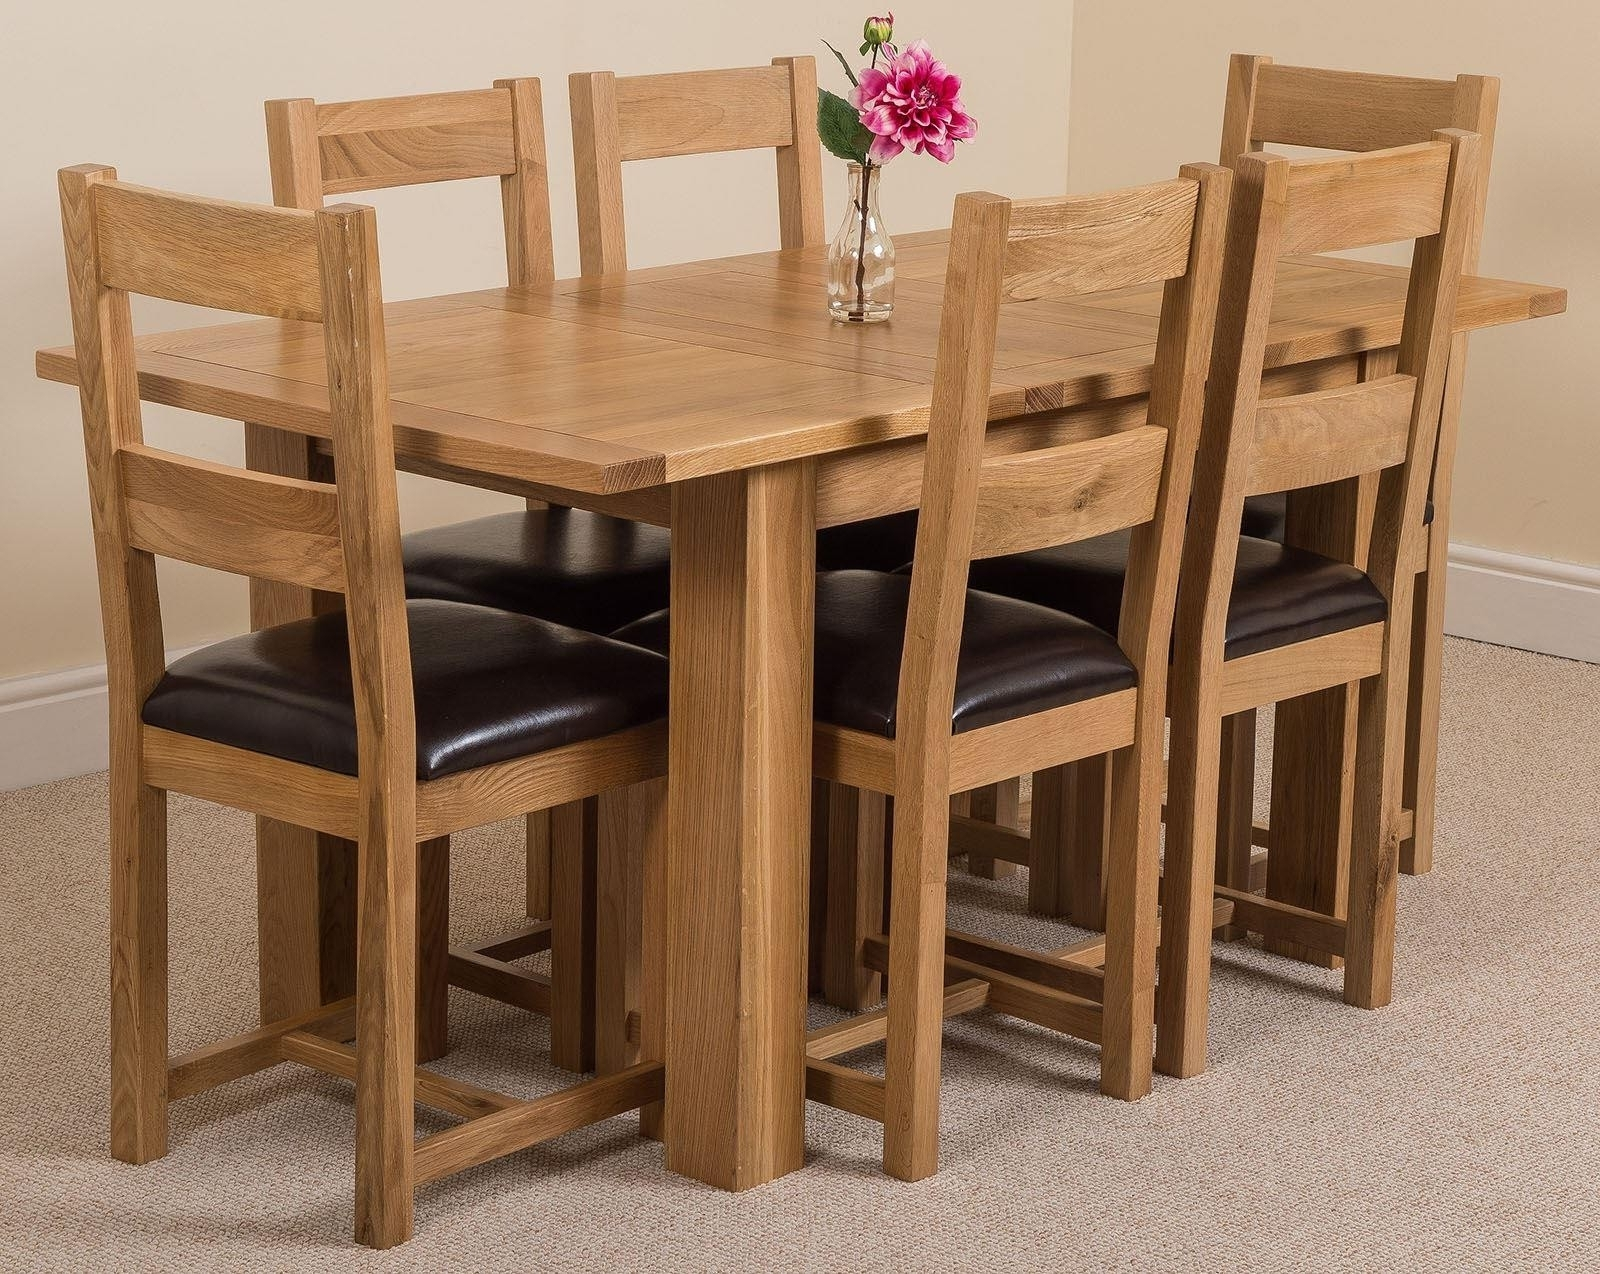 Oak Furniture King Pertaining To Oak Dining Set 6 Chairs (View 8 of 25)